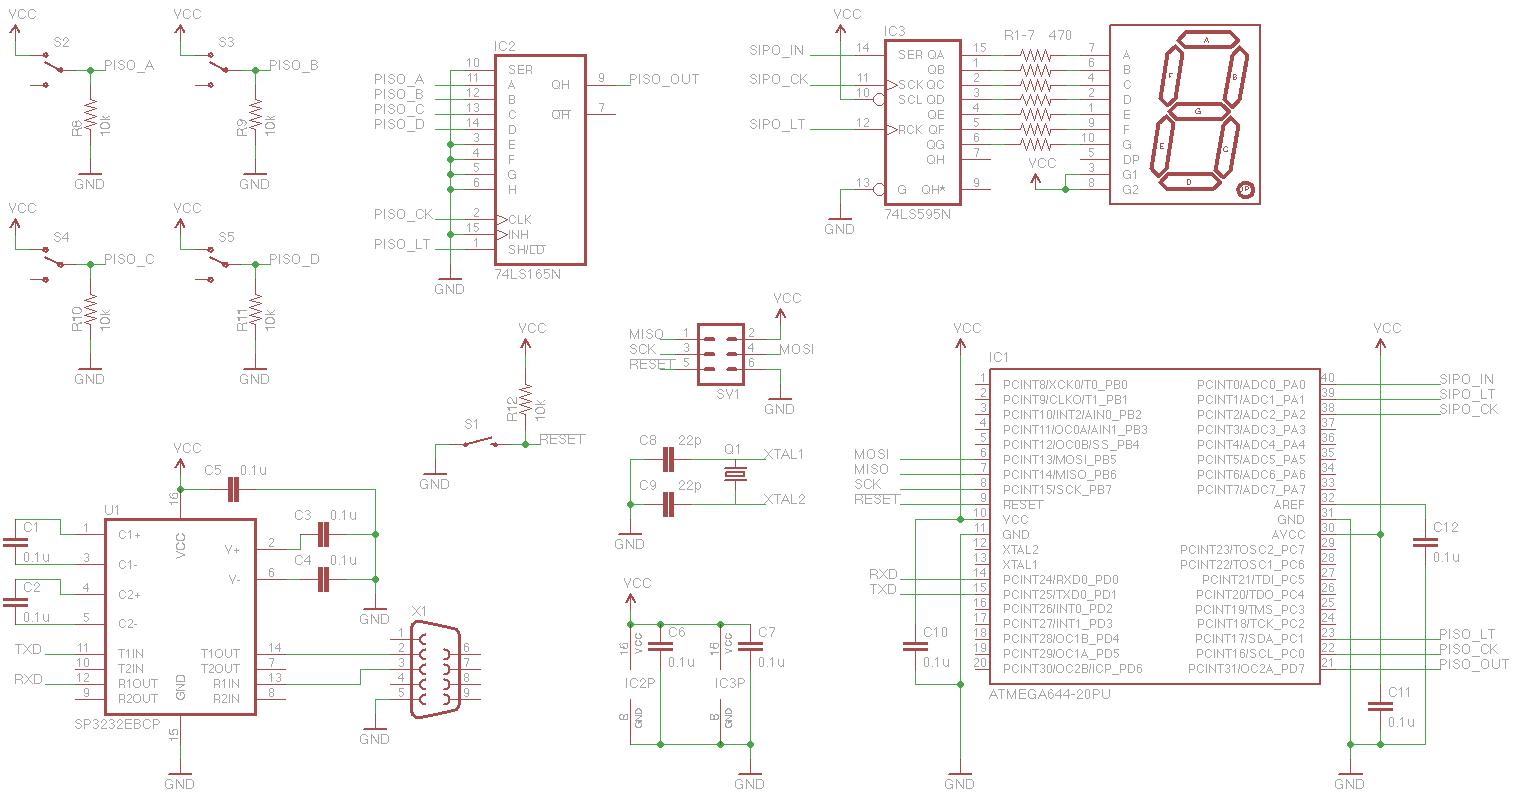 Blog Shift Registers Register Circuit Diagram I Didnt Want To Have Worry About Microcontroller Constraints Ram Size Etc And Wanted Concentrate On The